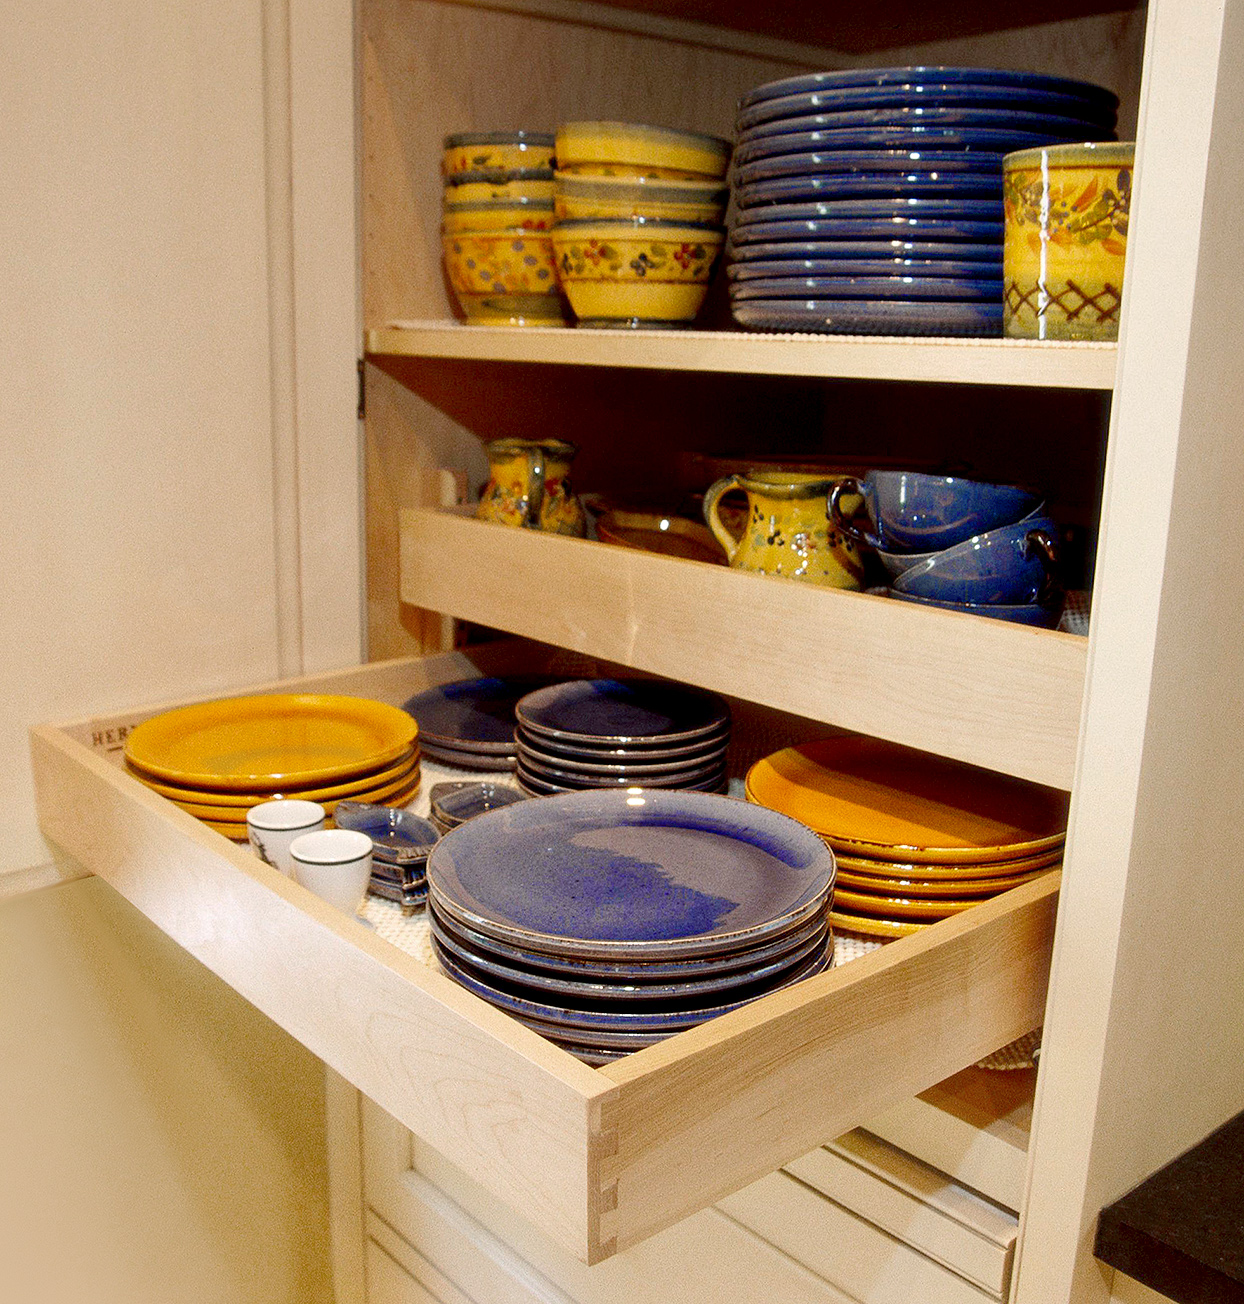 full extension kitchen cabinet drawer with plates and cups